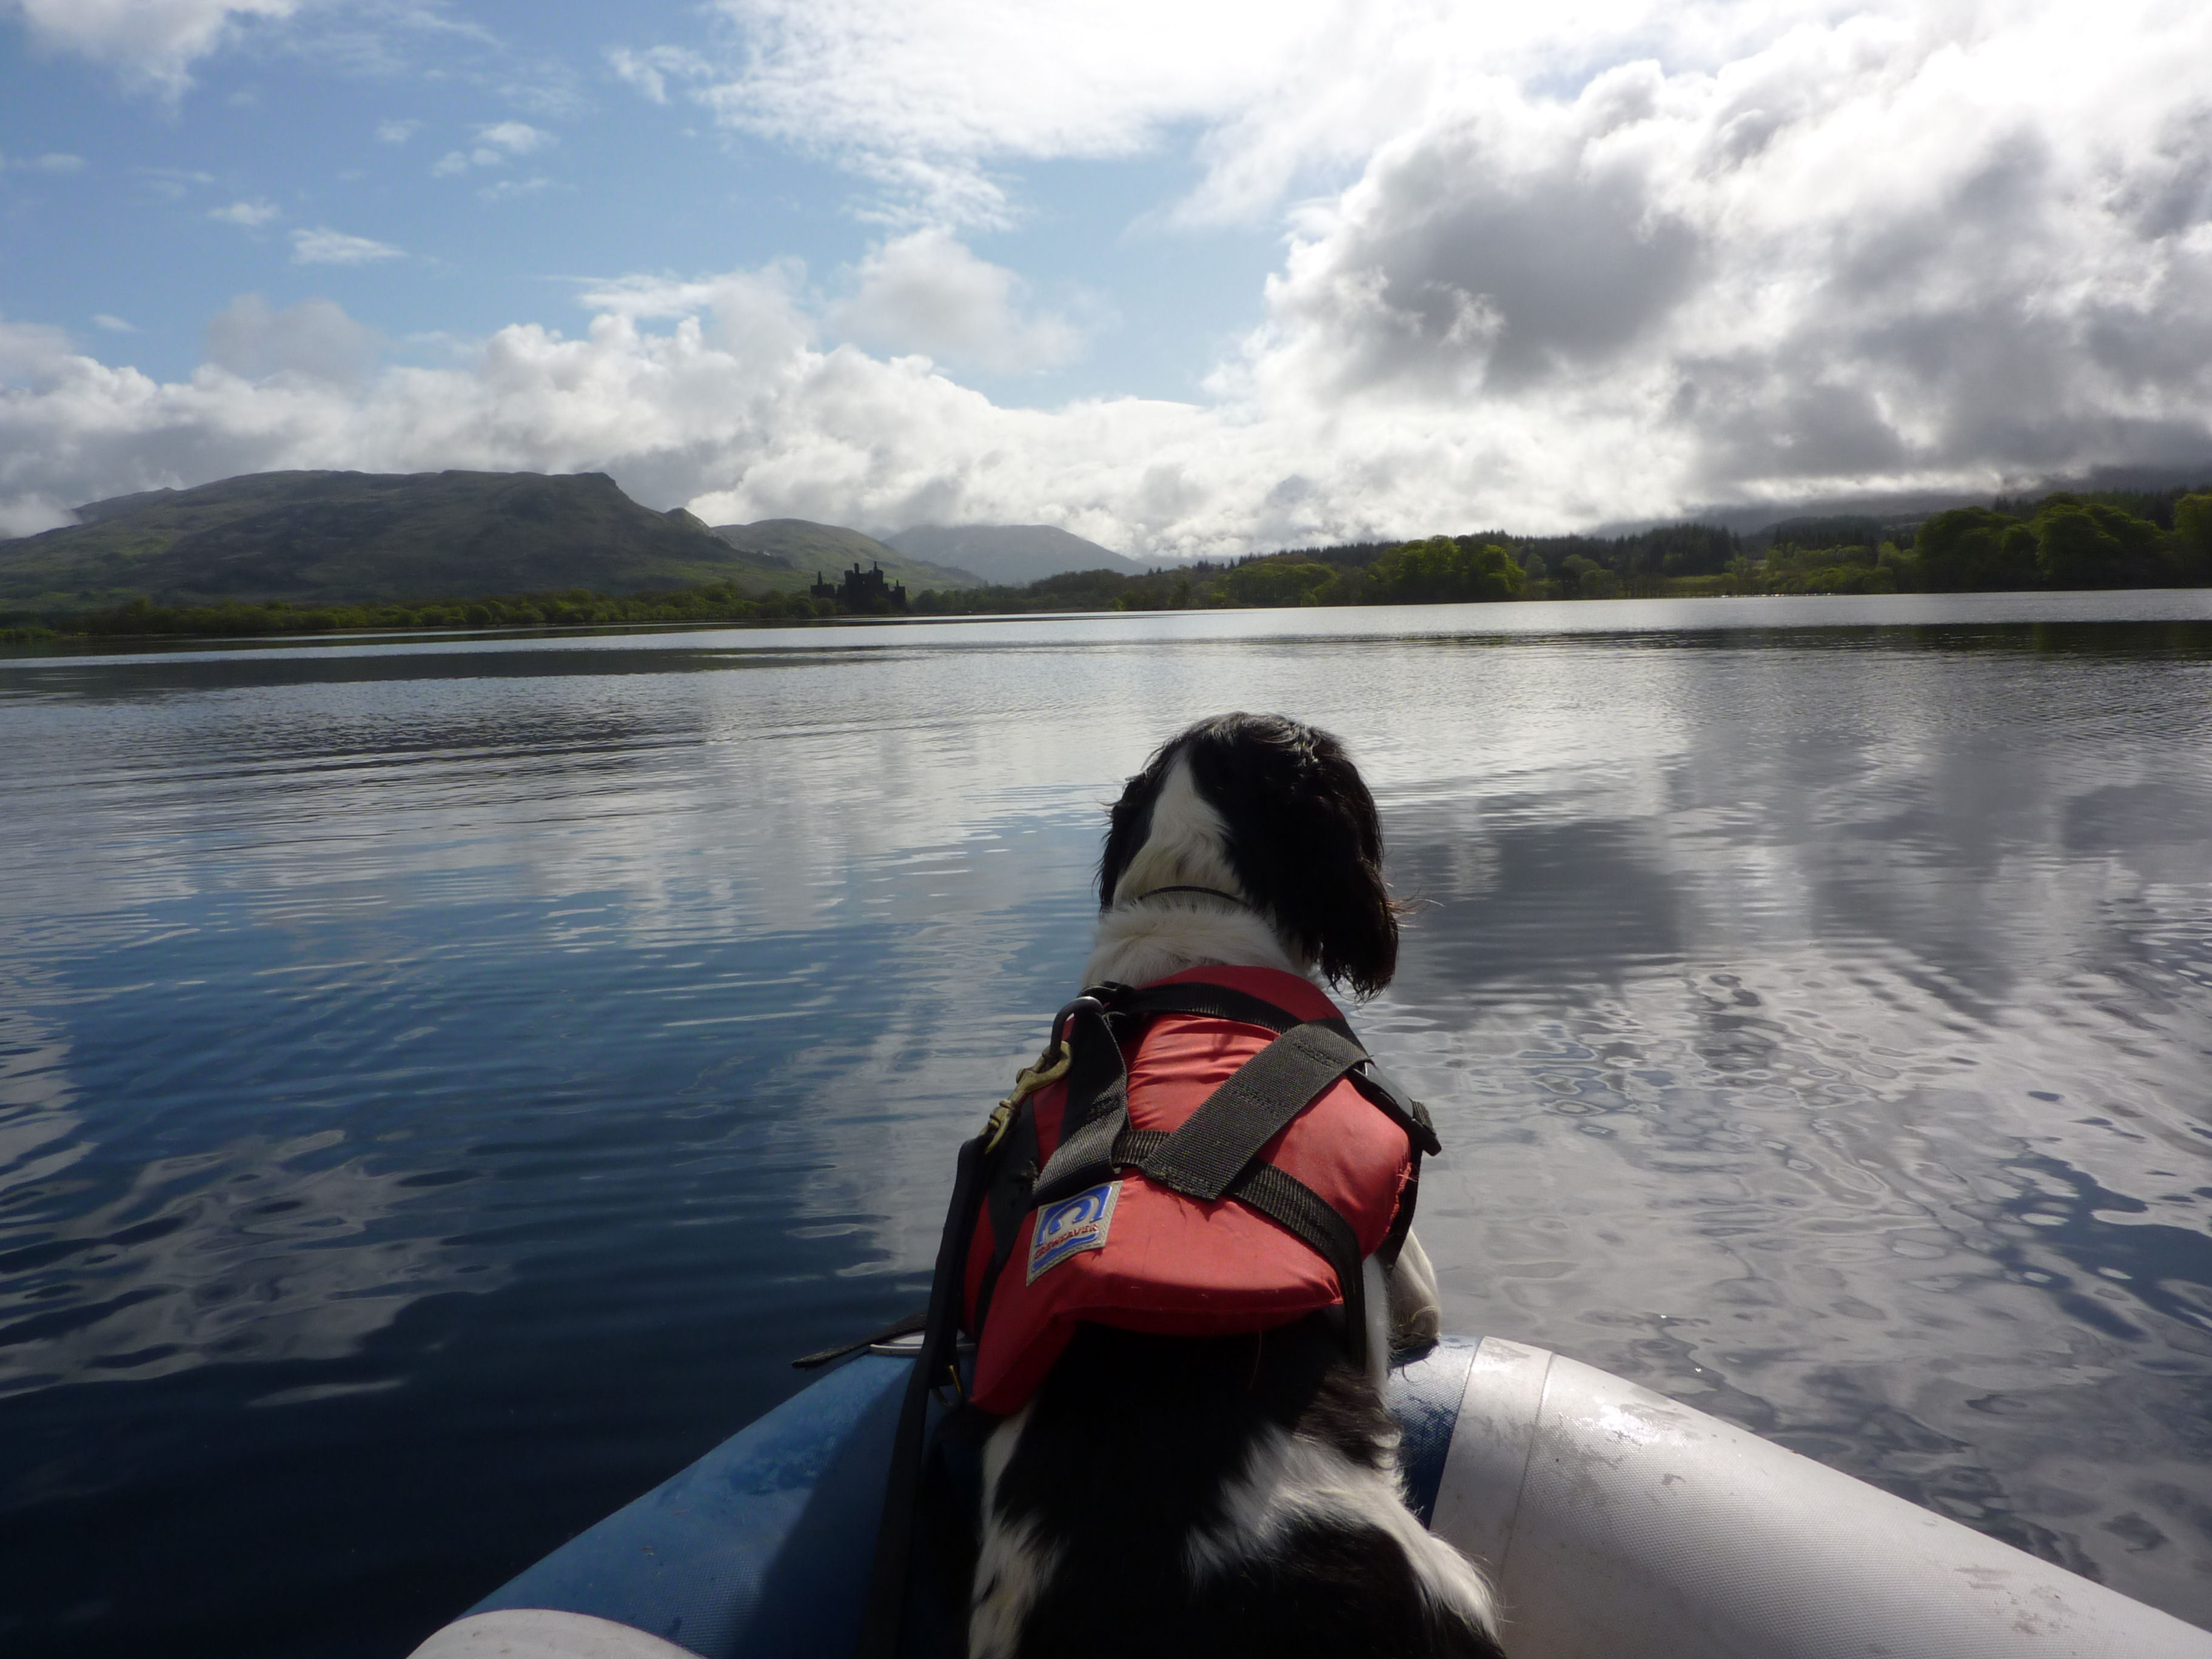 NSARDA Drowned Victim Search Dog at work